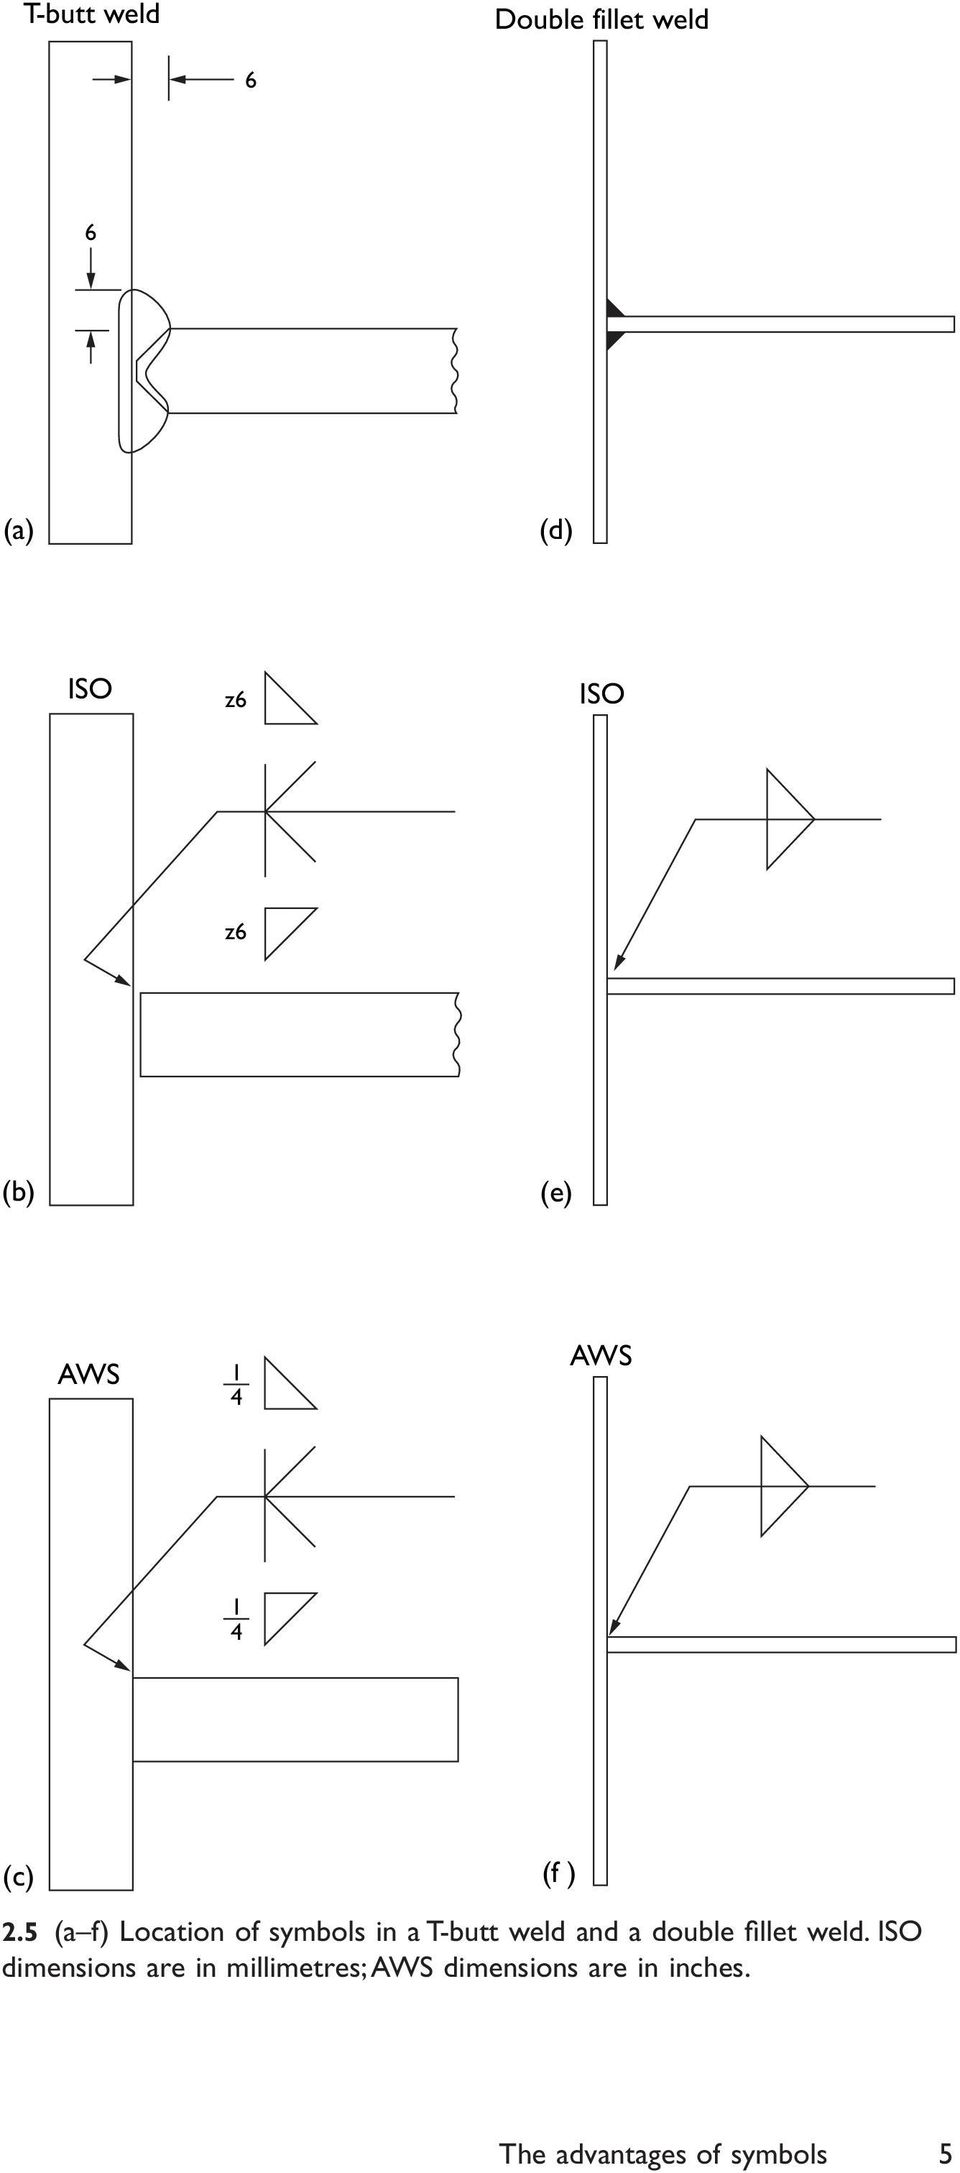 medium resolution of 5 a f location of symbols in a t butt weld and a double